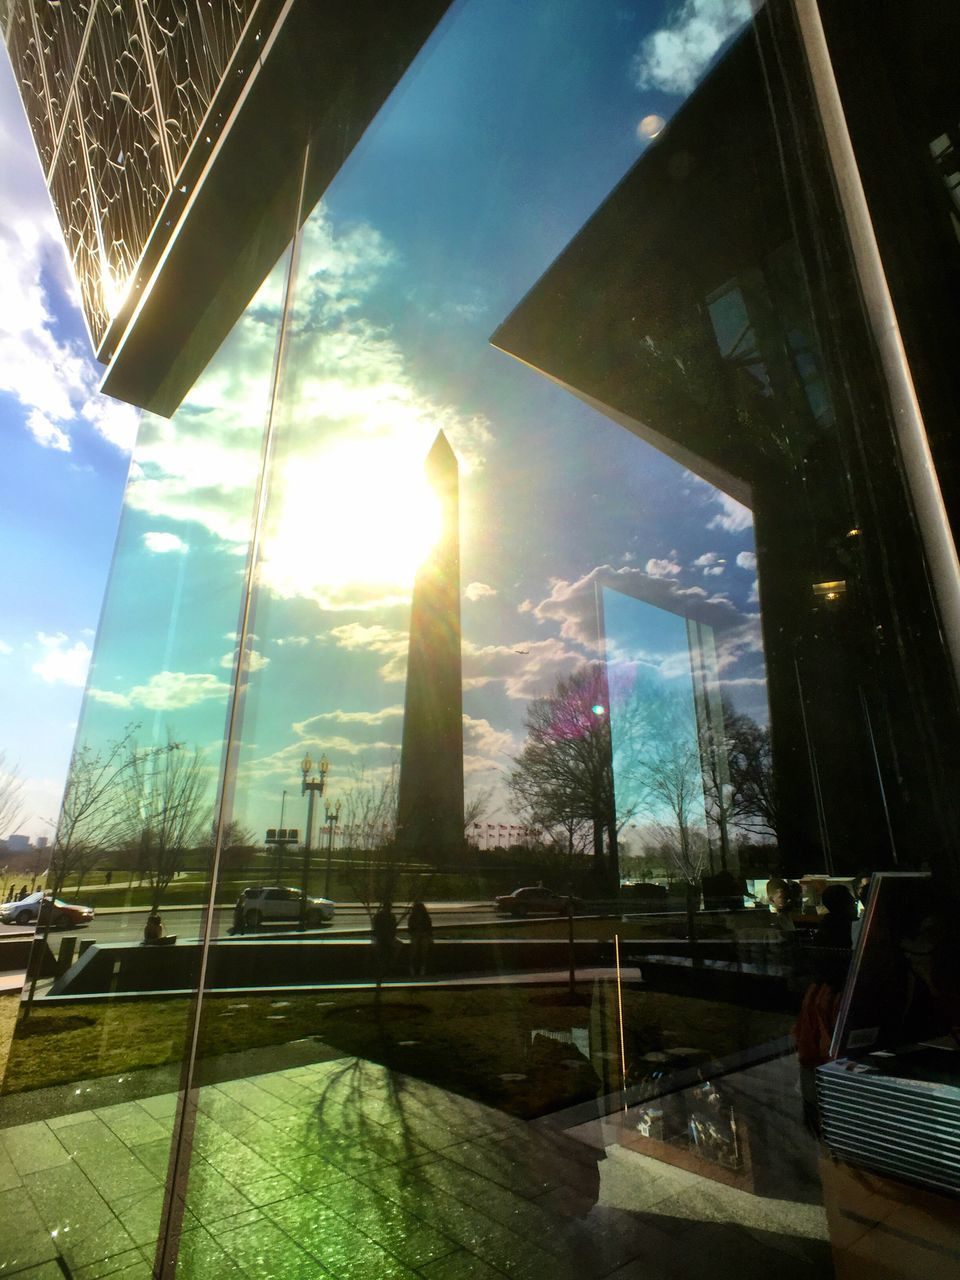 window, sunlight, sunbeam, sky, lens flare, sun, reflection, day, cloud - sky, tree, looking through window, indoors, building exterior, one person, architecture, nature, city, people